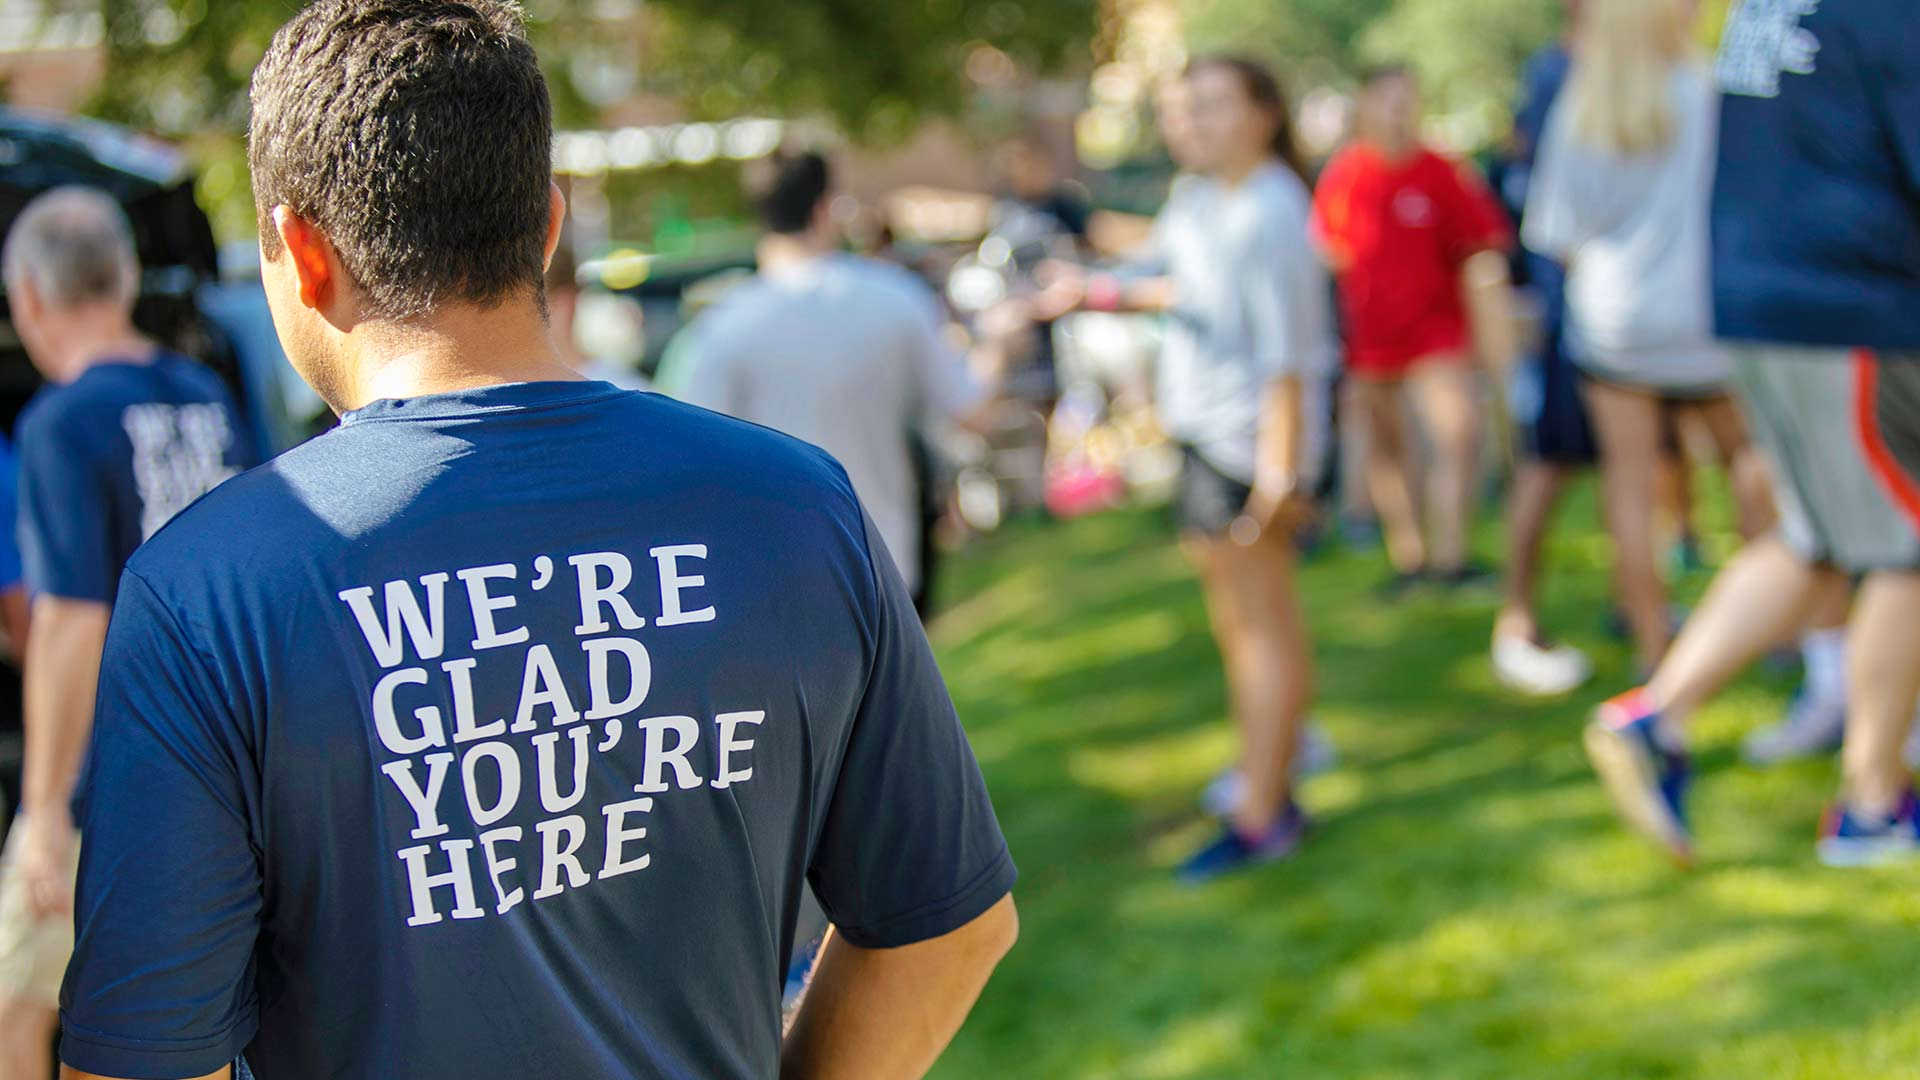 were glad youre here t shirt